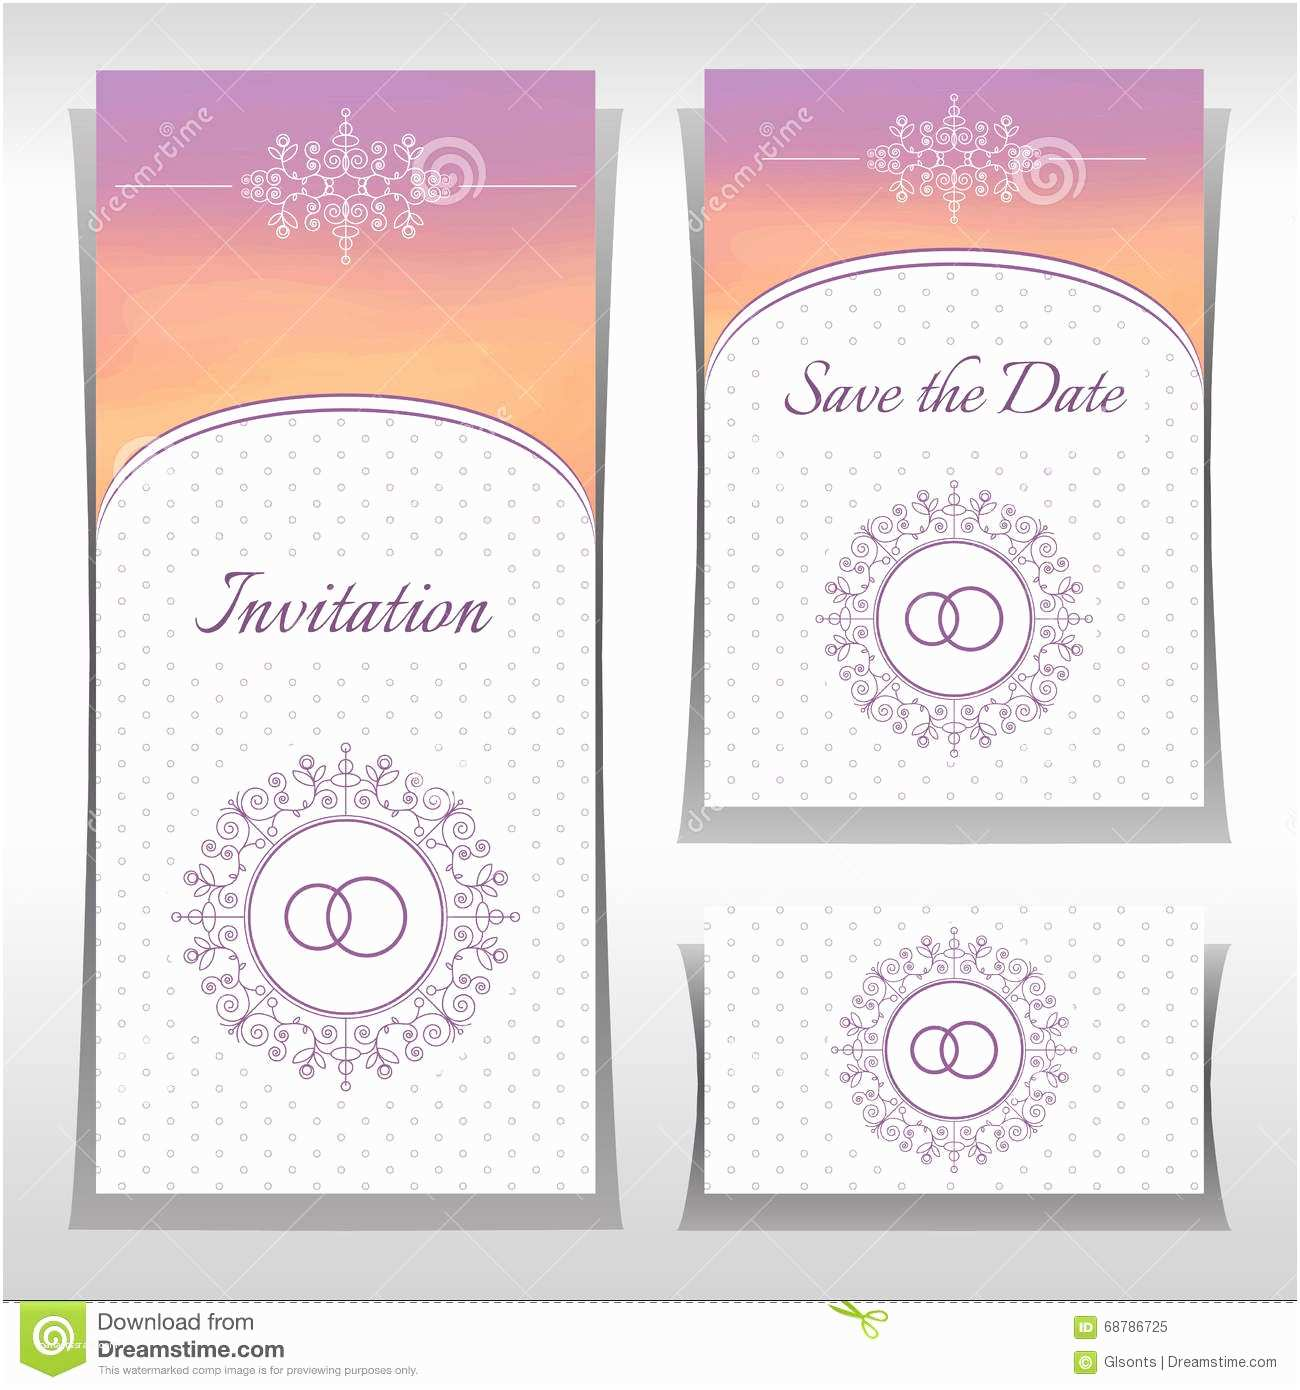 Elegant Wedding Invitation Sets Set Wedding Invitation Templates with Elegant ornament